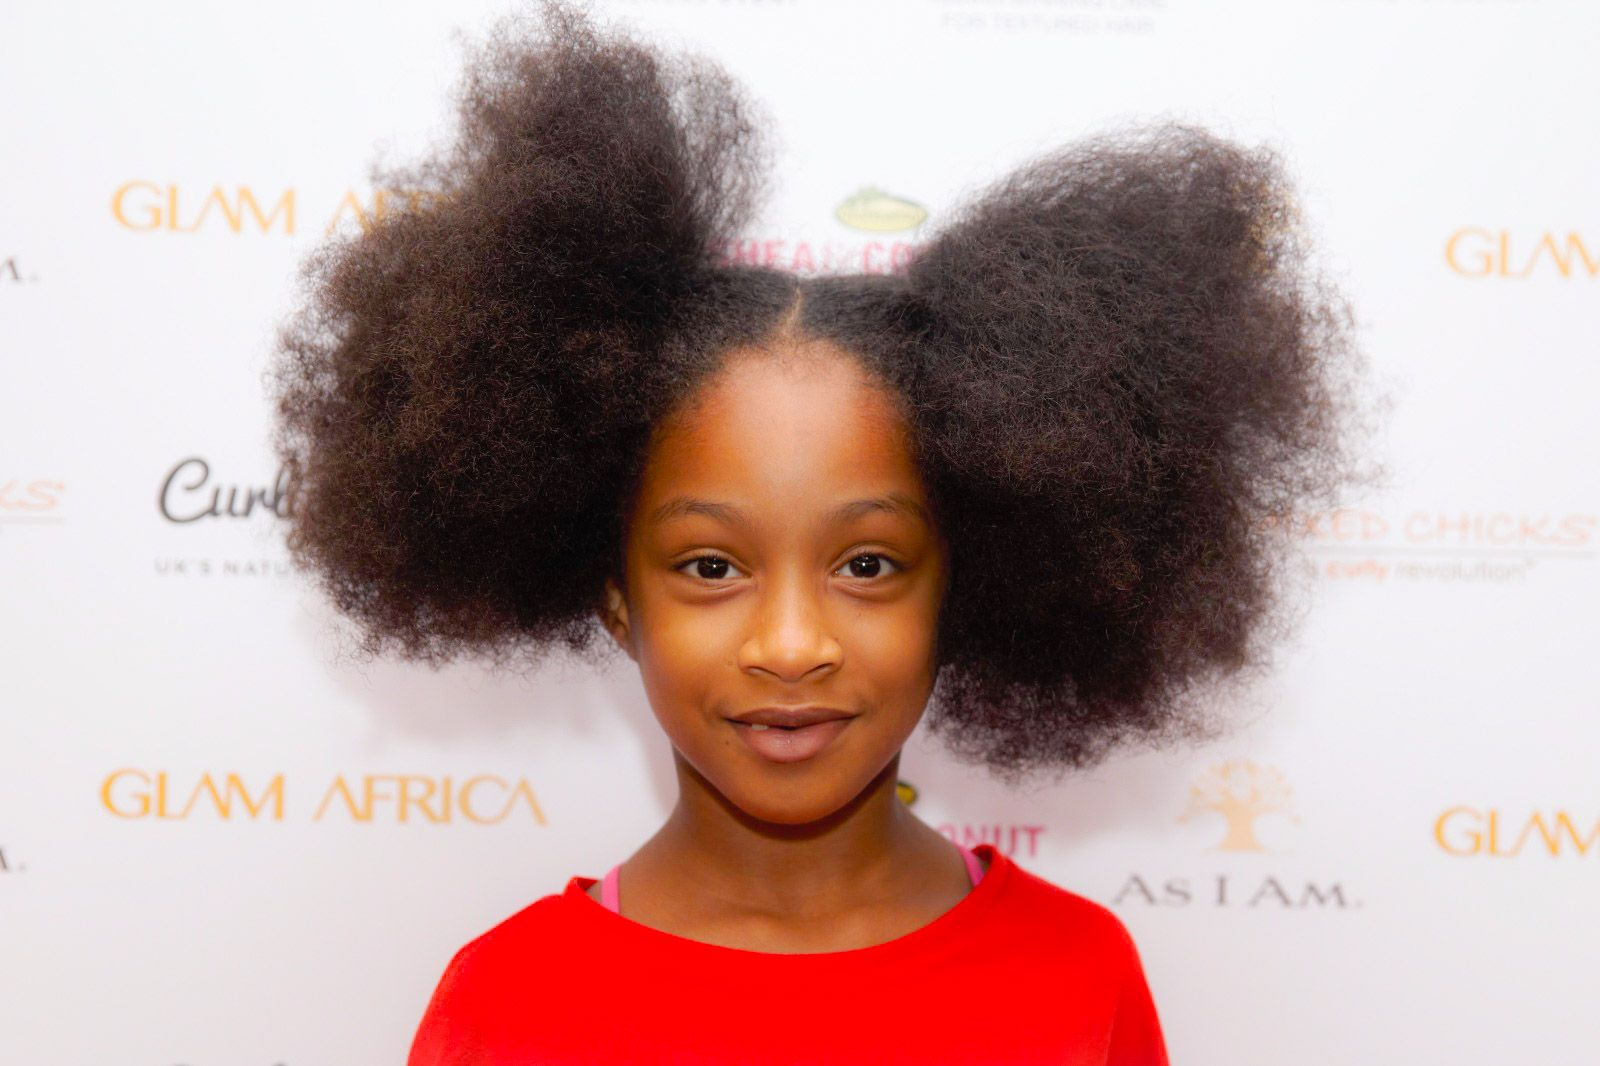 2018 CurlyTreats Natural Afro Hair Event in London - Under 12s free